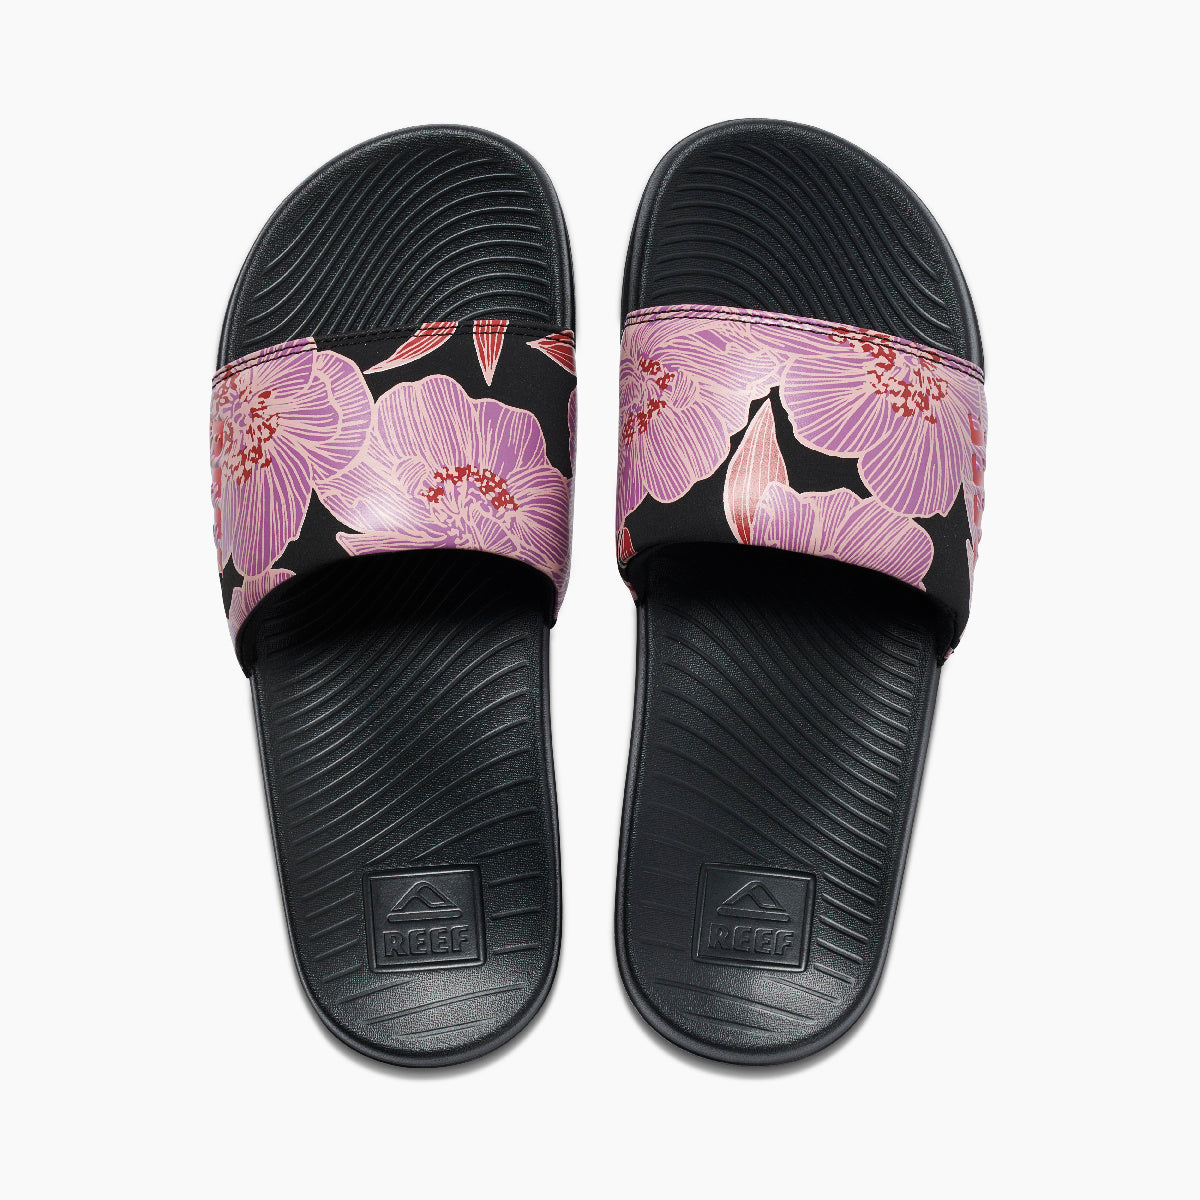 Reef One Women's Slide Sandals - 88 Gear